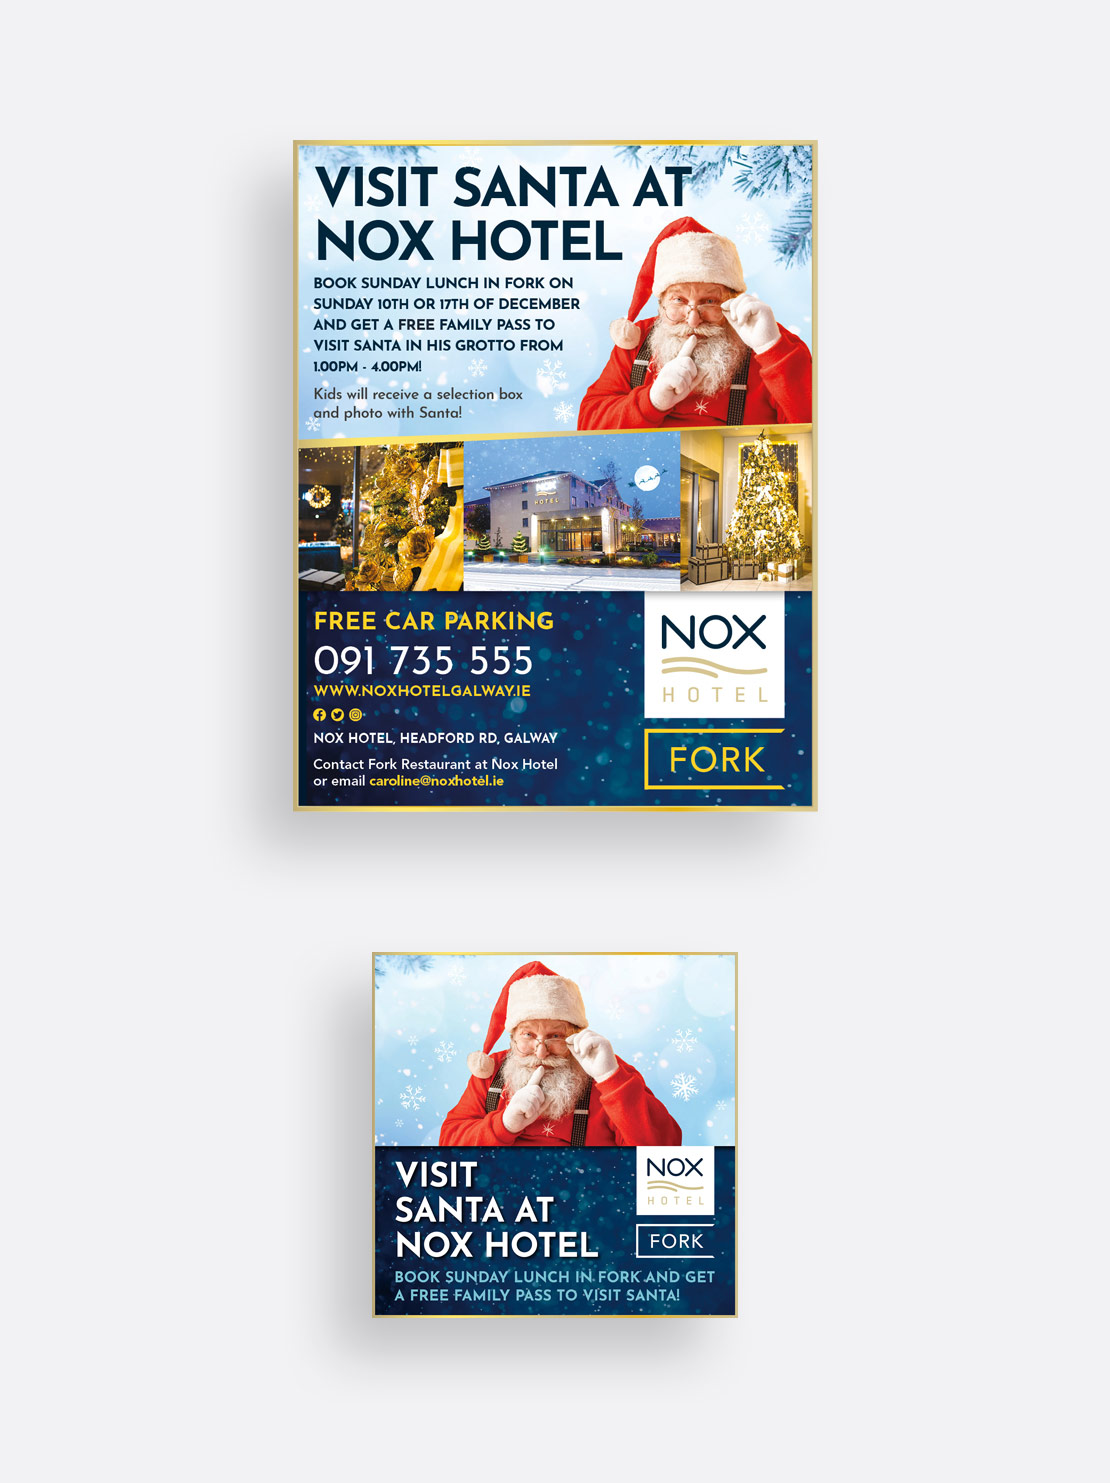 Nox Hotel Christmas 2017 print and social media campaign